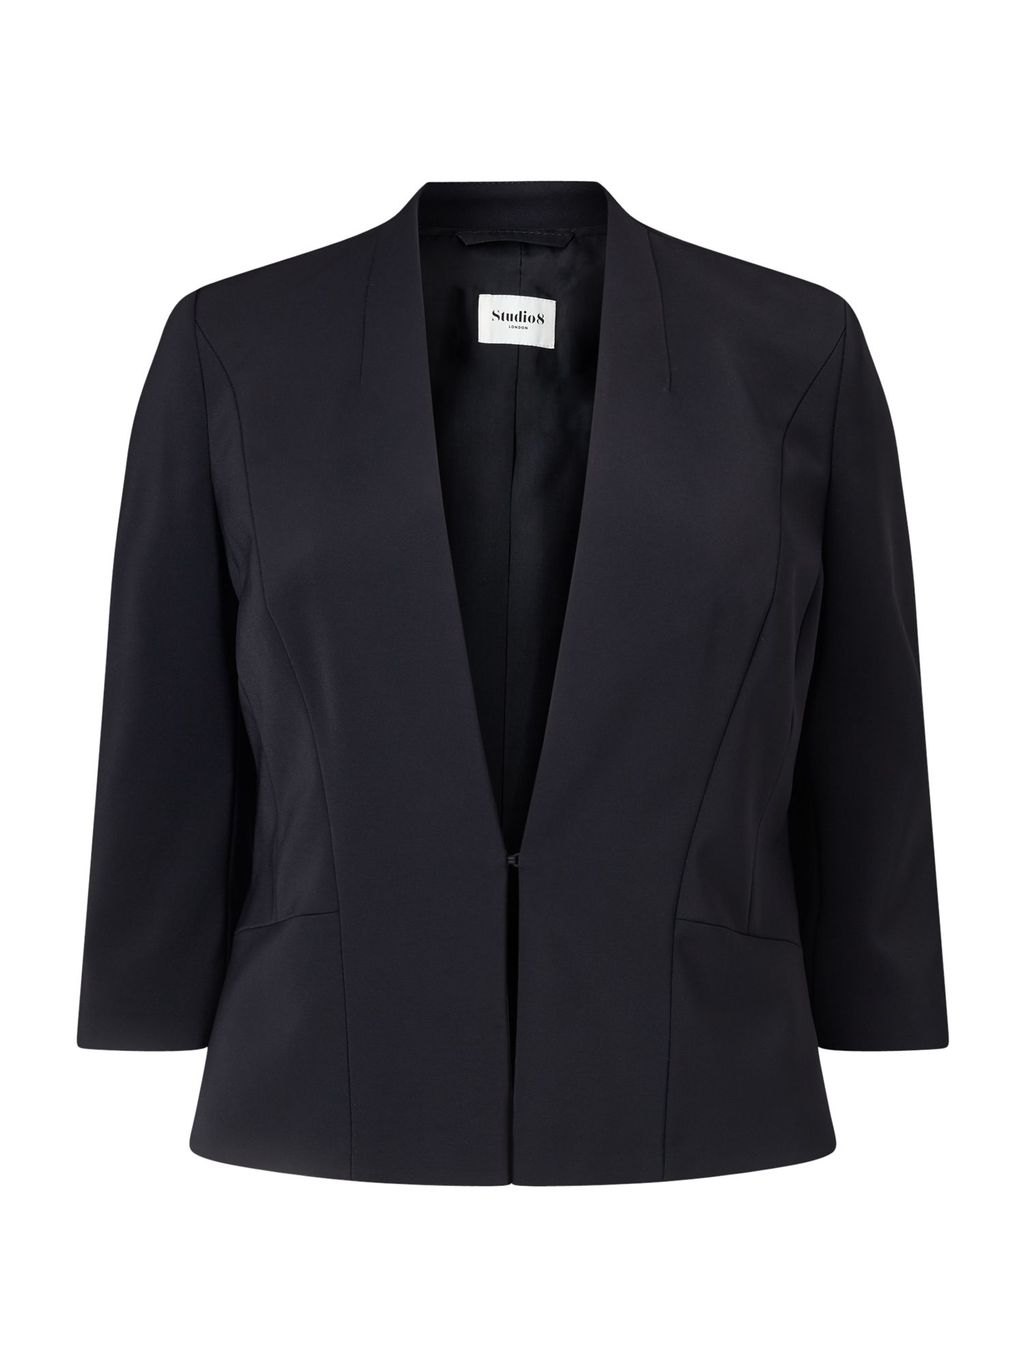 Celia Jacket, Black - pattern: plain; style: single breasted blazer; collar: round collar/collarless; predominant colour: black; occasions: work; length: standard; fit: tailored/fitted; fibres: polyester/polyamide - stretch; sleeve length: 3/4 length; sleeve style: standard; texture group: crepes; collar break: low/open; pattern type: fabric; wardrobe: investment; season: a/w 2016